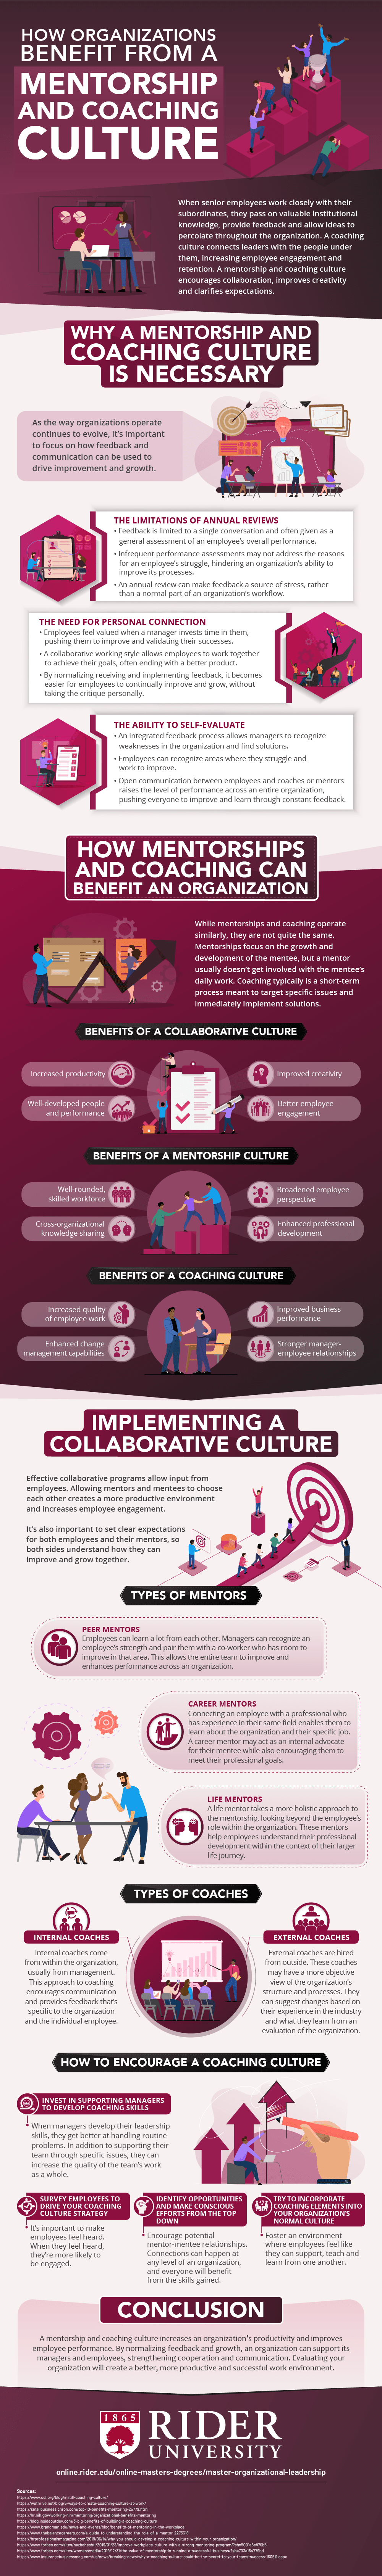 Understanding how organizations and employees benefit from a mentorship and coaching culture.